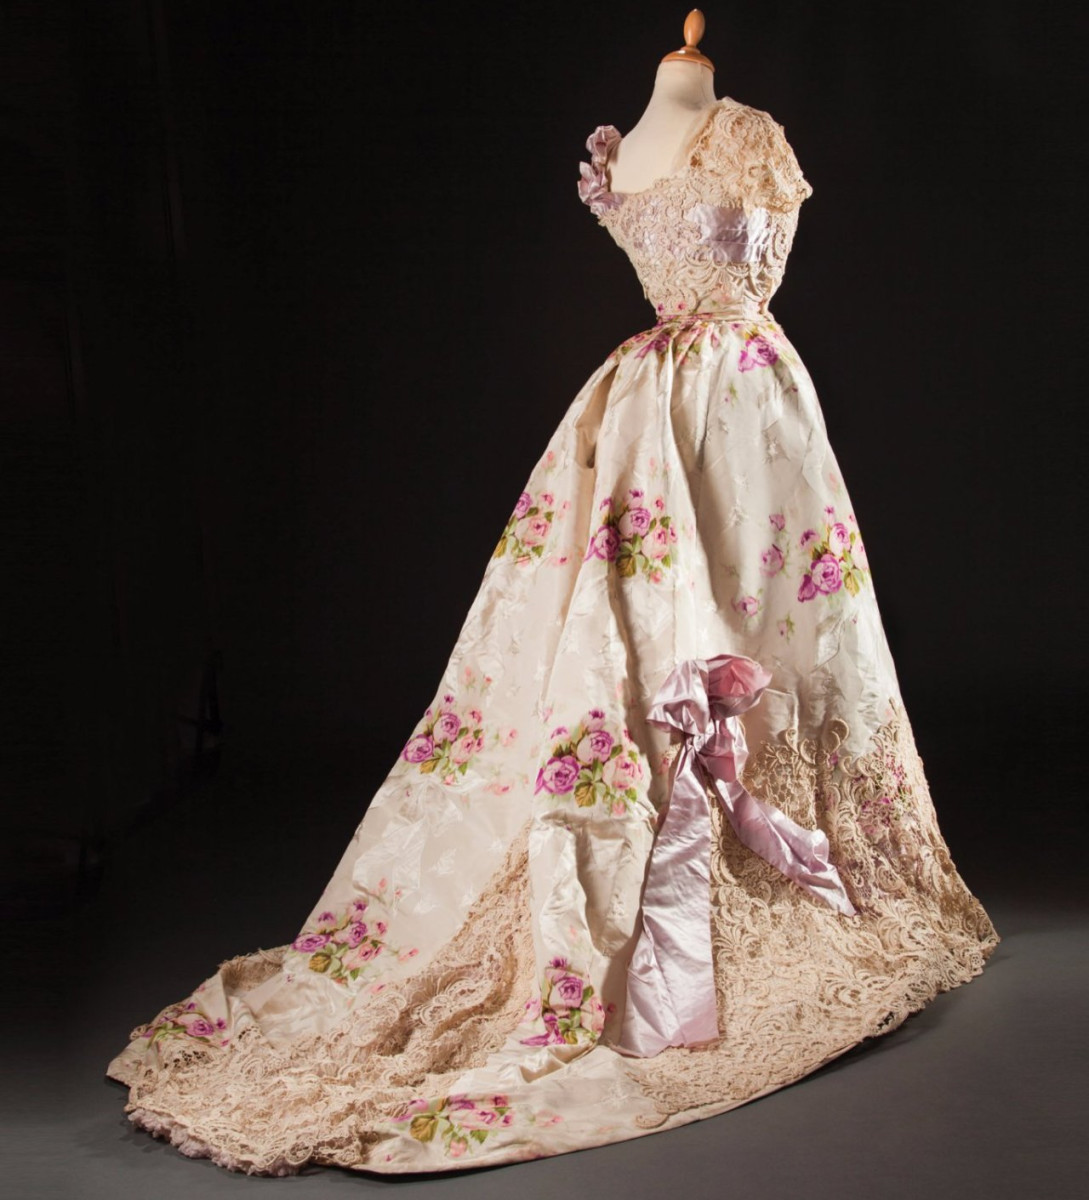 Large bouquets of pink and fuchsia roses decorate this circa 1890 silk evening dress by Madeleine Laferriere. Added to the ornamentation is an application of chemical Venice lace and a large iridescent mauve satin ribbon. This sold at auction for $6,700.